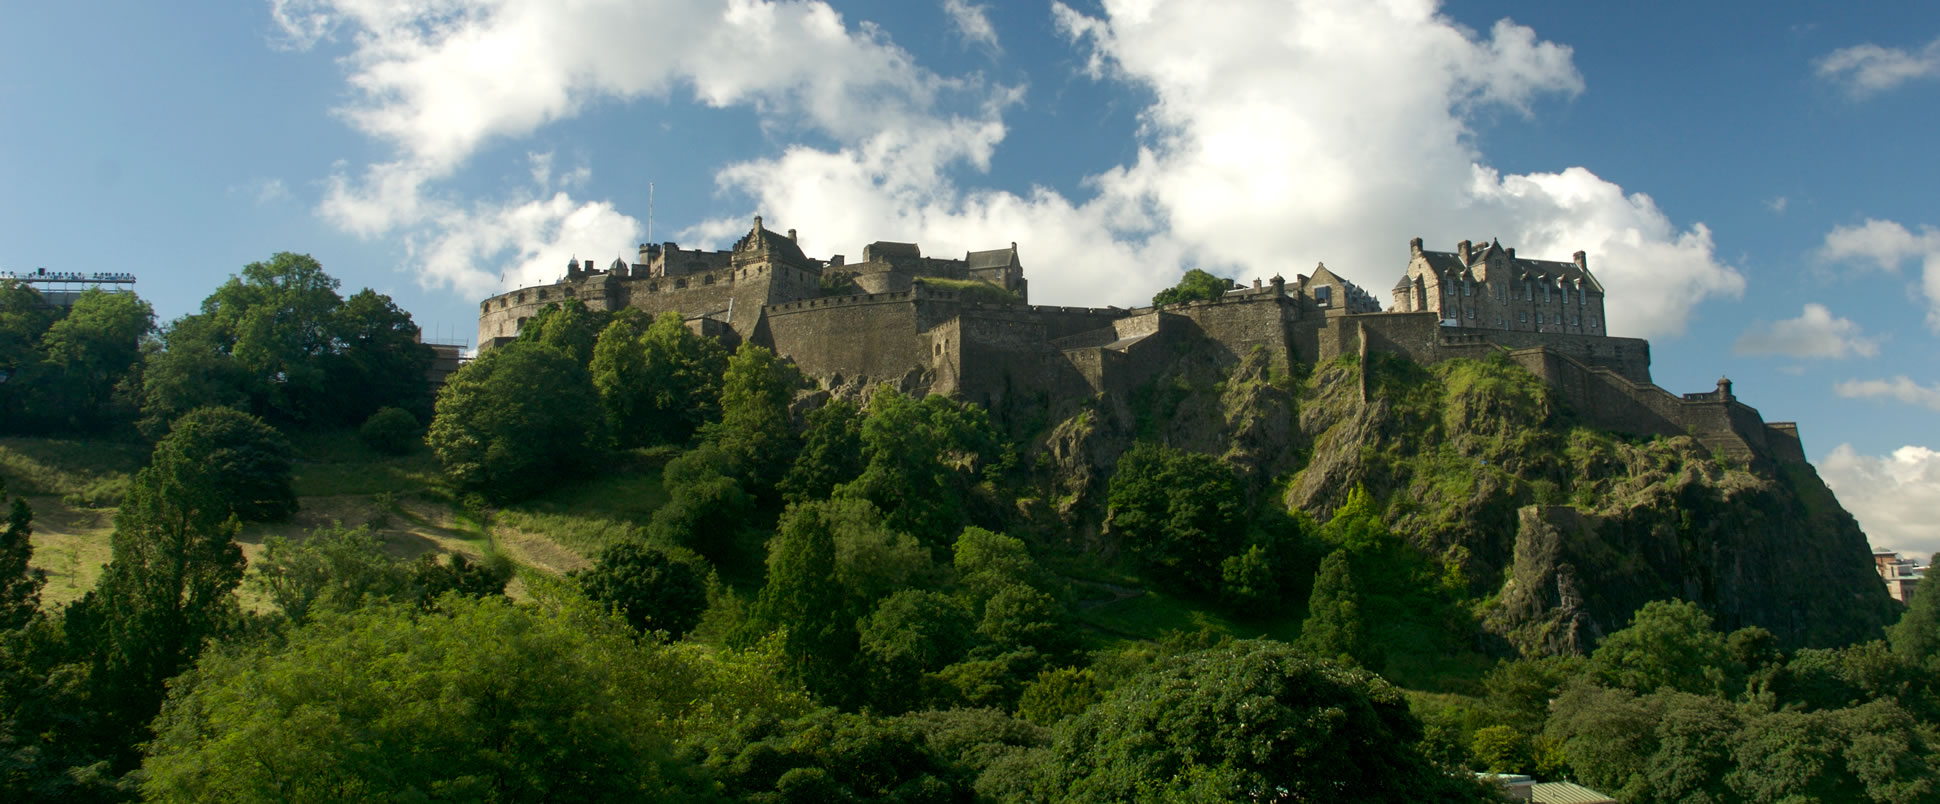 Edinburgh Castle Public Body for Scotlands Historic Environment